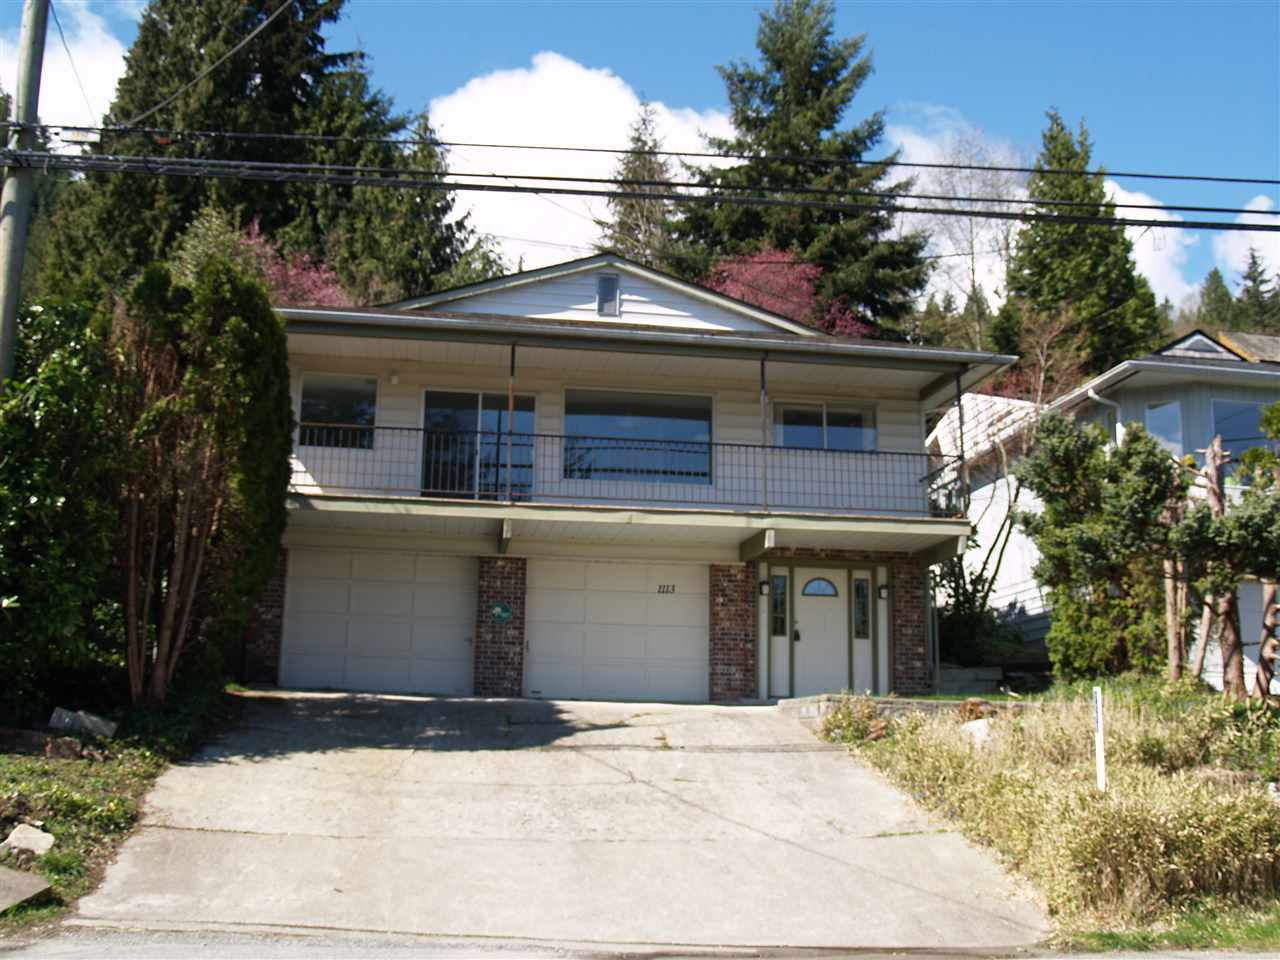 Main Photo: 1113 MARINE Drive in Gibsons: Gibsons & Area House for sale (Sunshine Coast)  : MLS®# R2157197